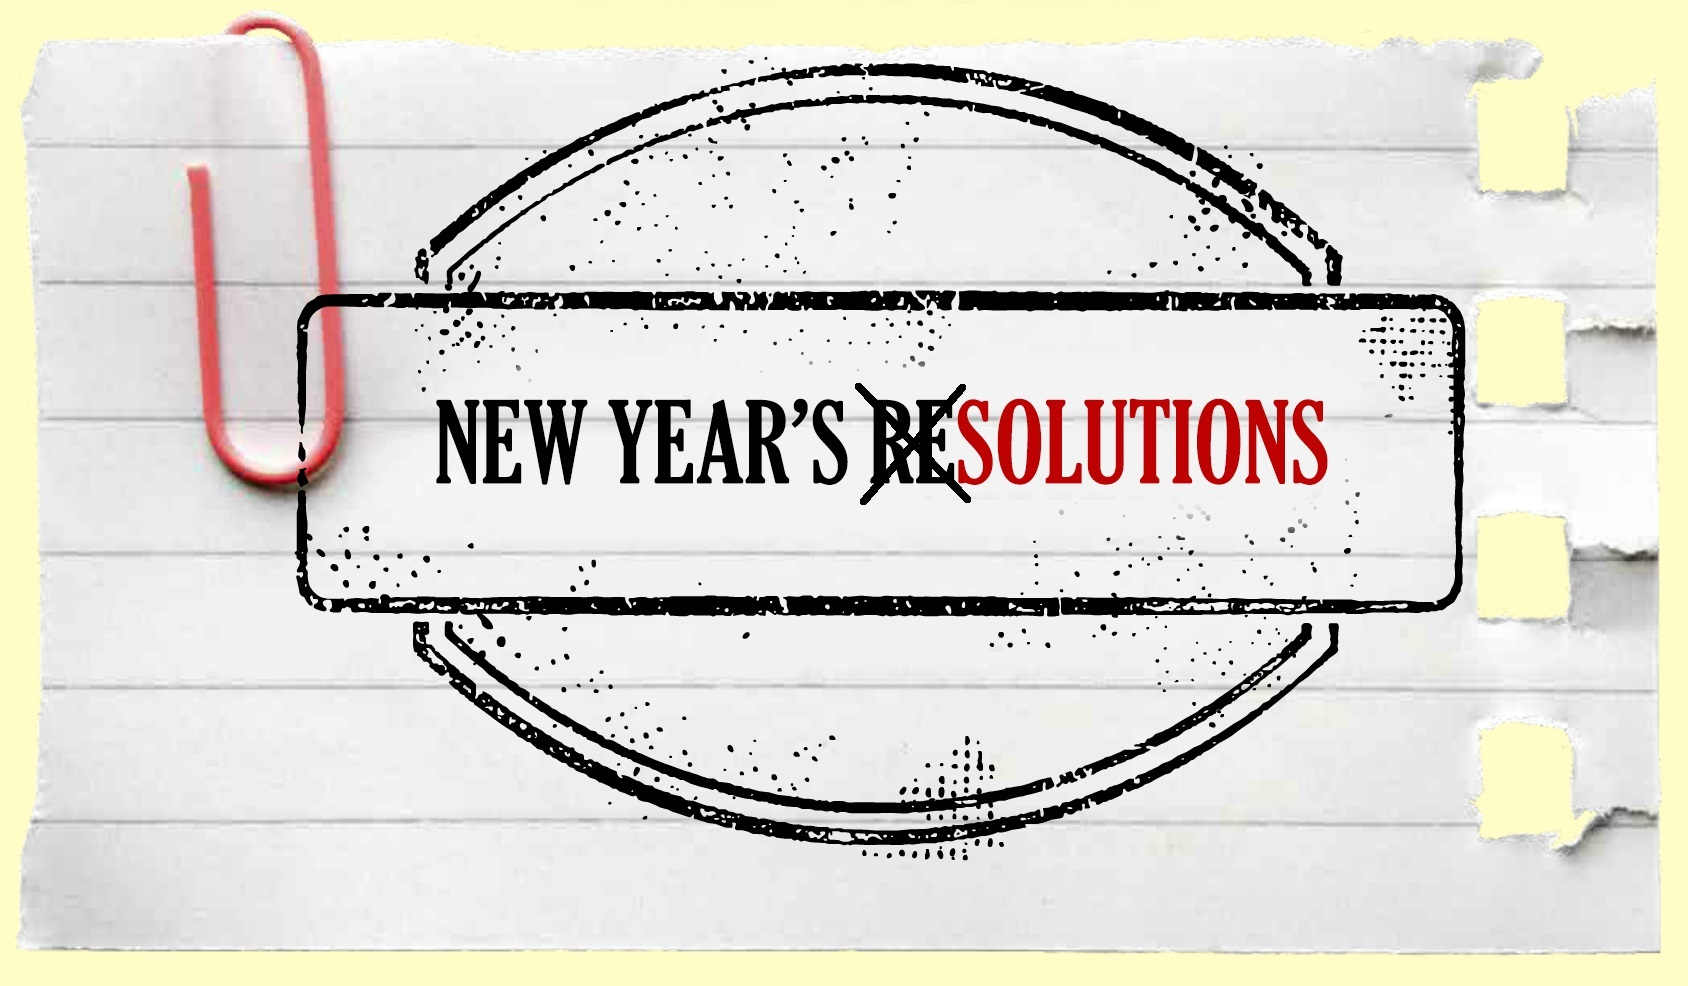 New Year's Solutions